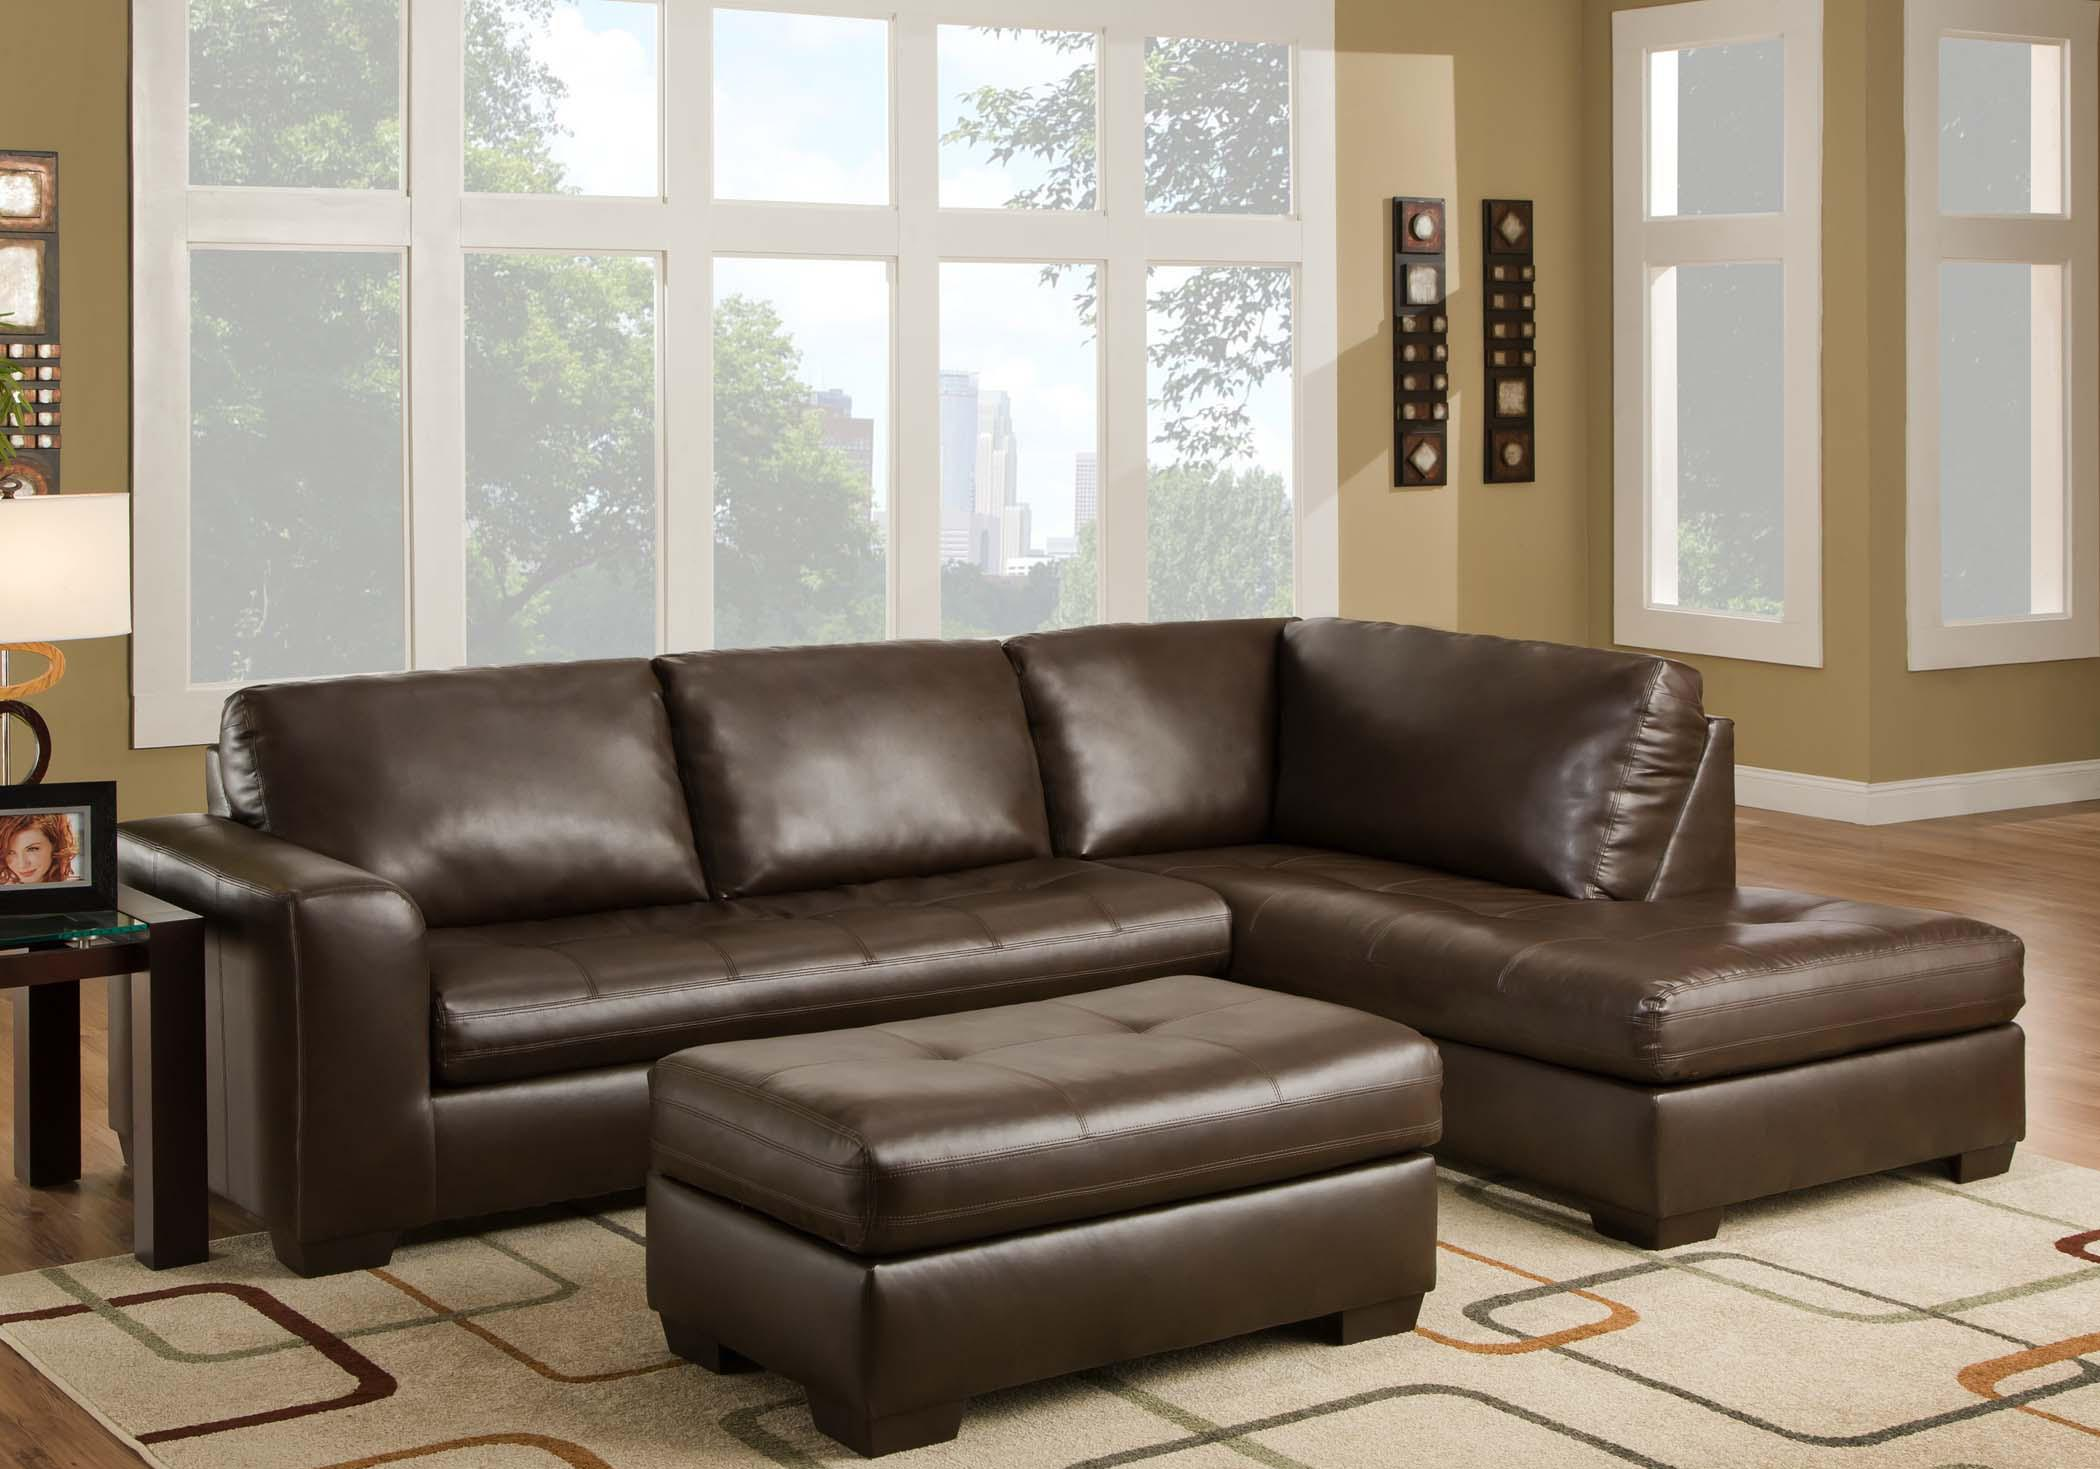 American Furniture 1230 Stationary Living Room Group - Item Number: 1230 Living Room Group 1 (Choco)